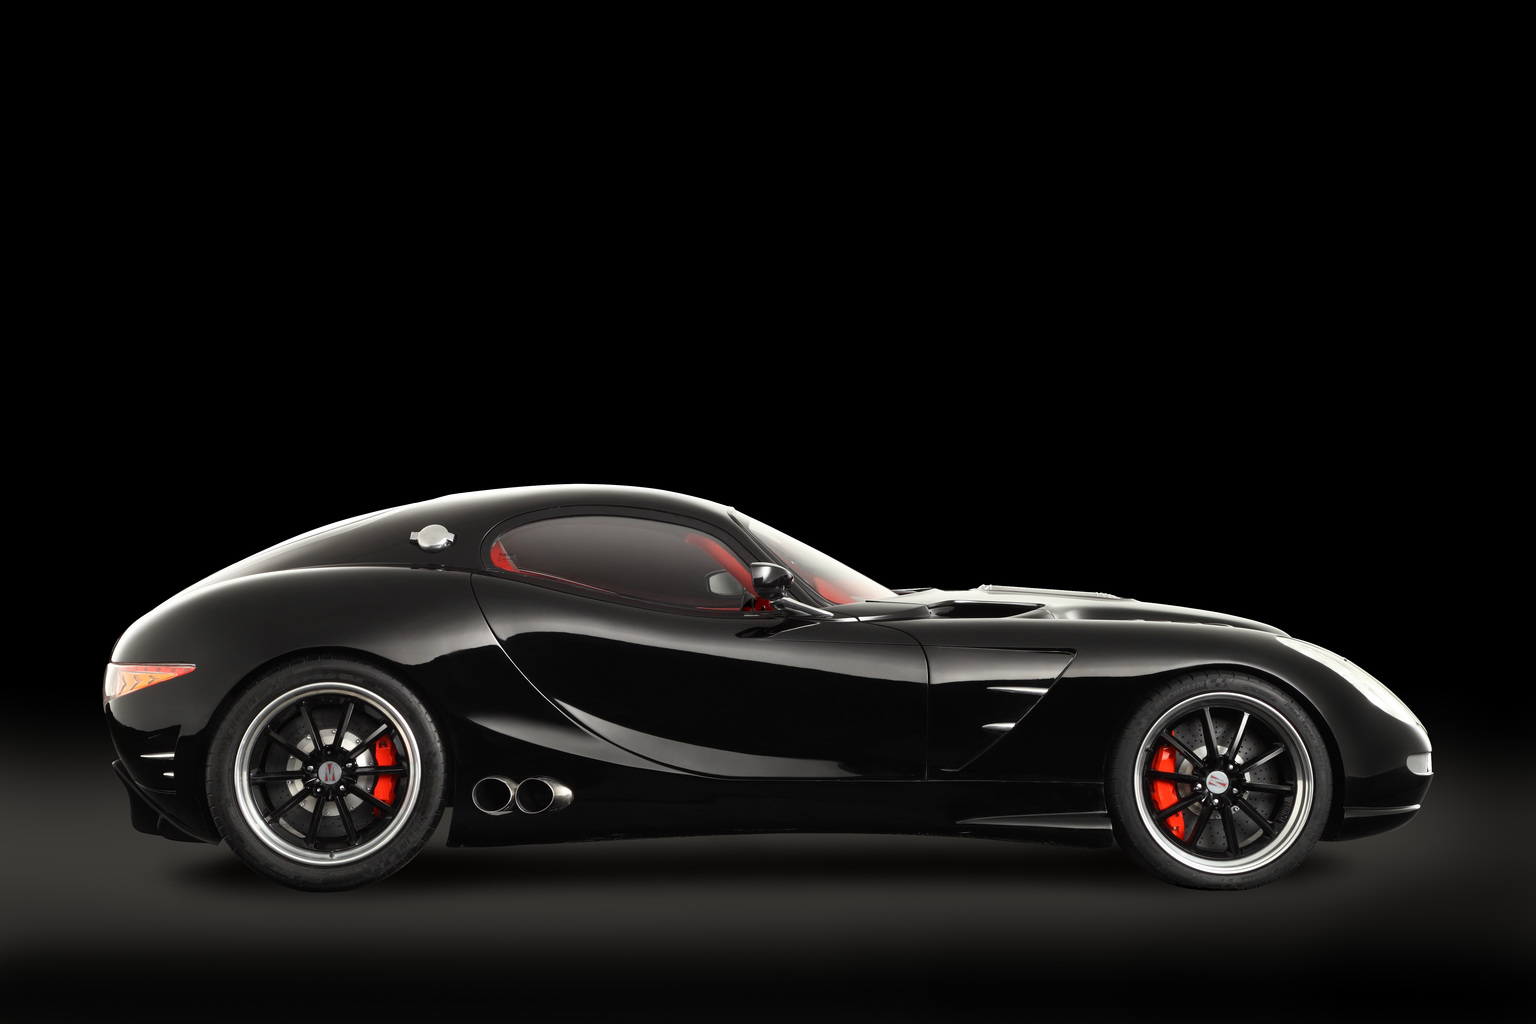 Trident Iceni Magna side view